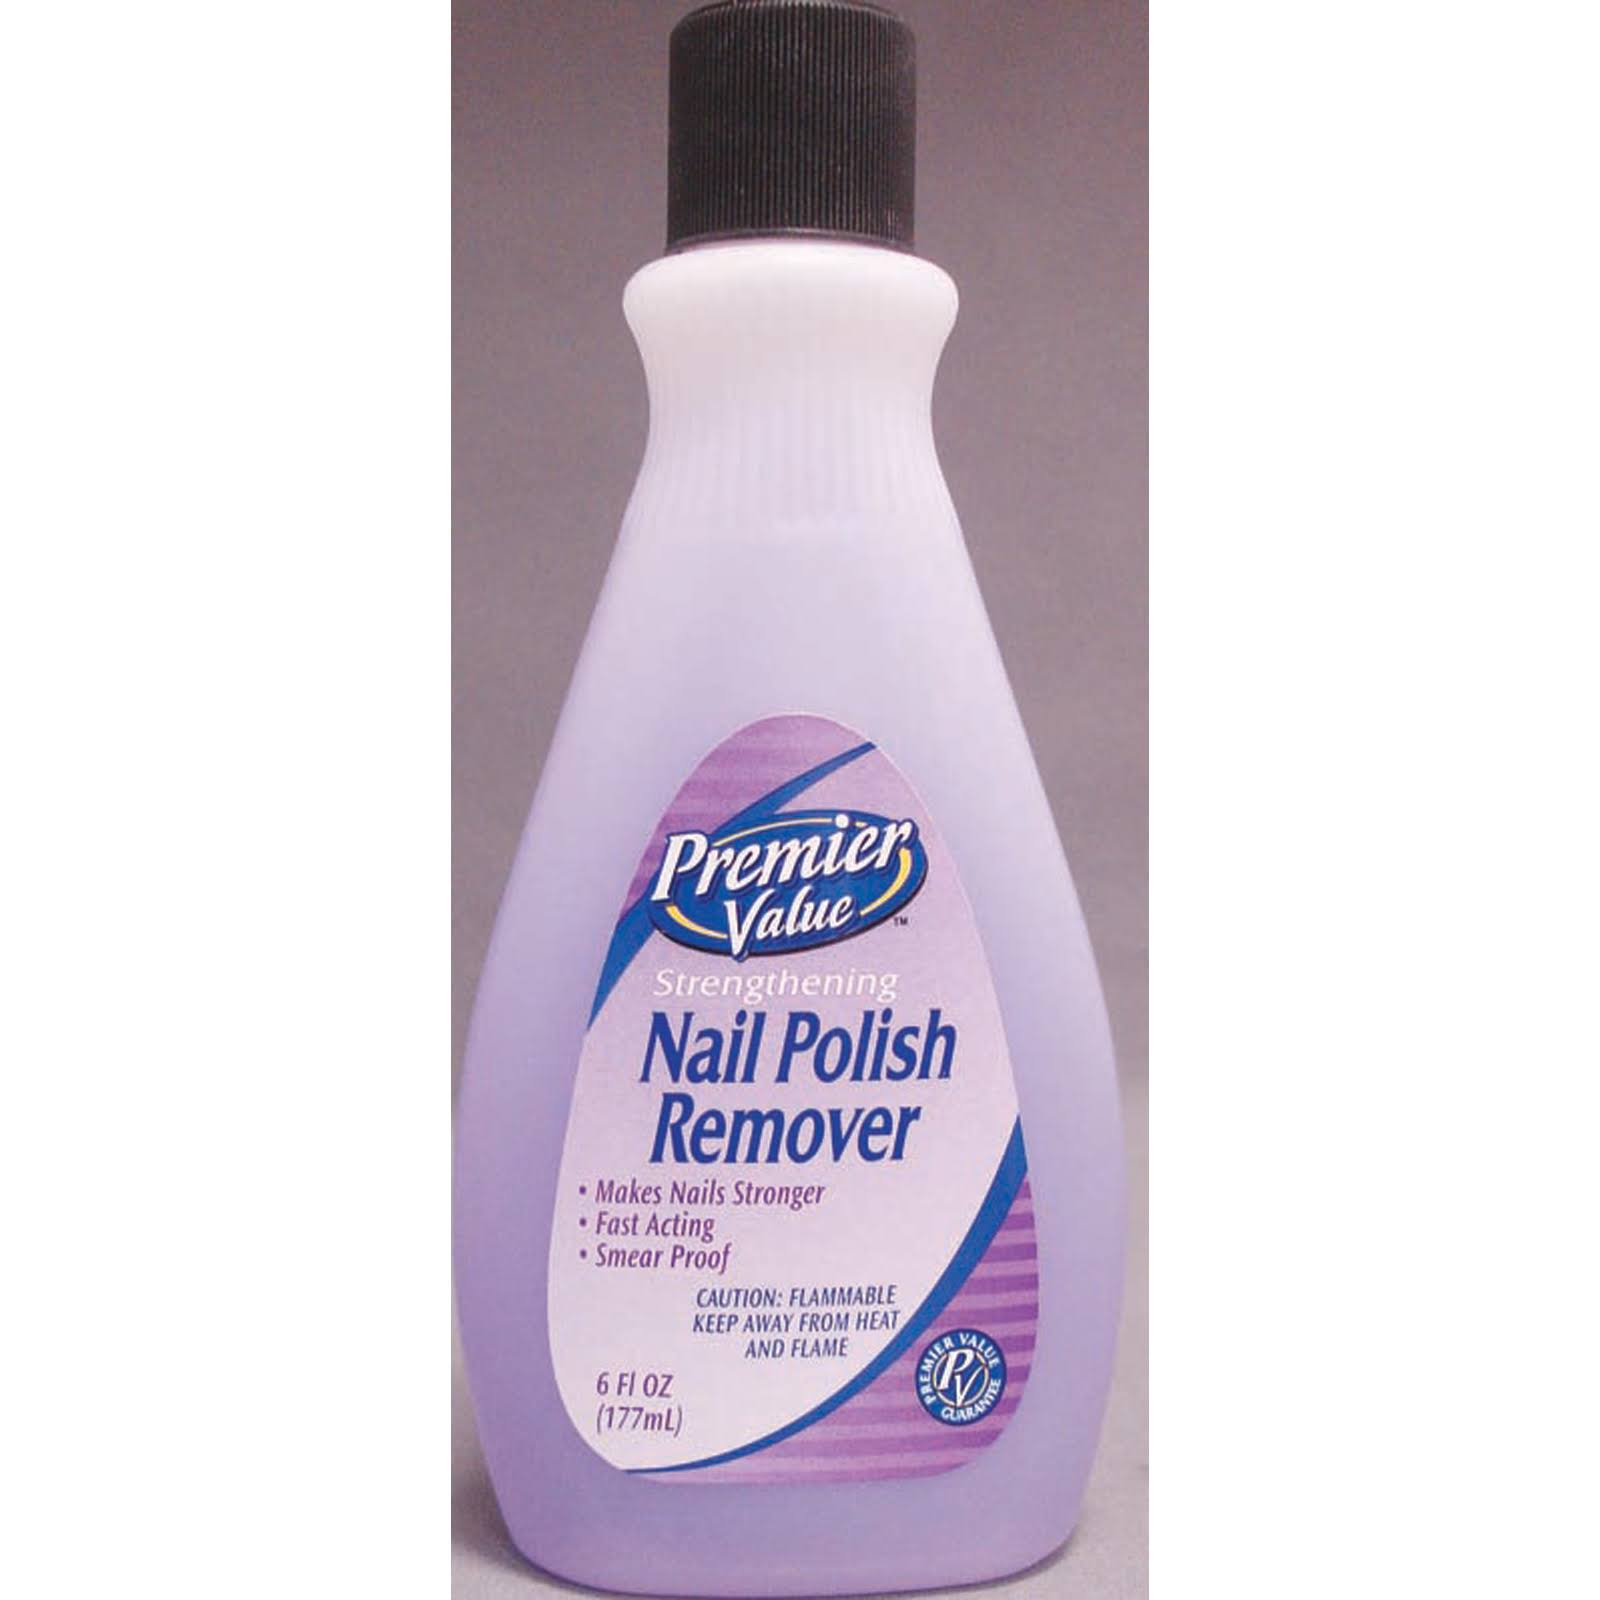 Premier Value Nail Polish Remover Strength - 6oz